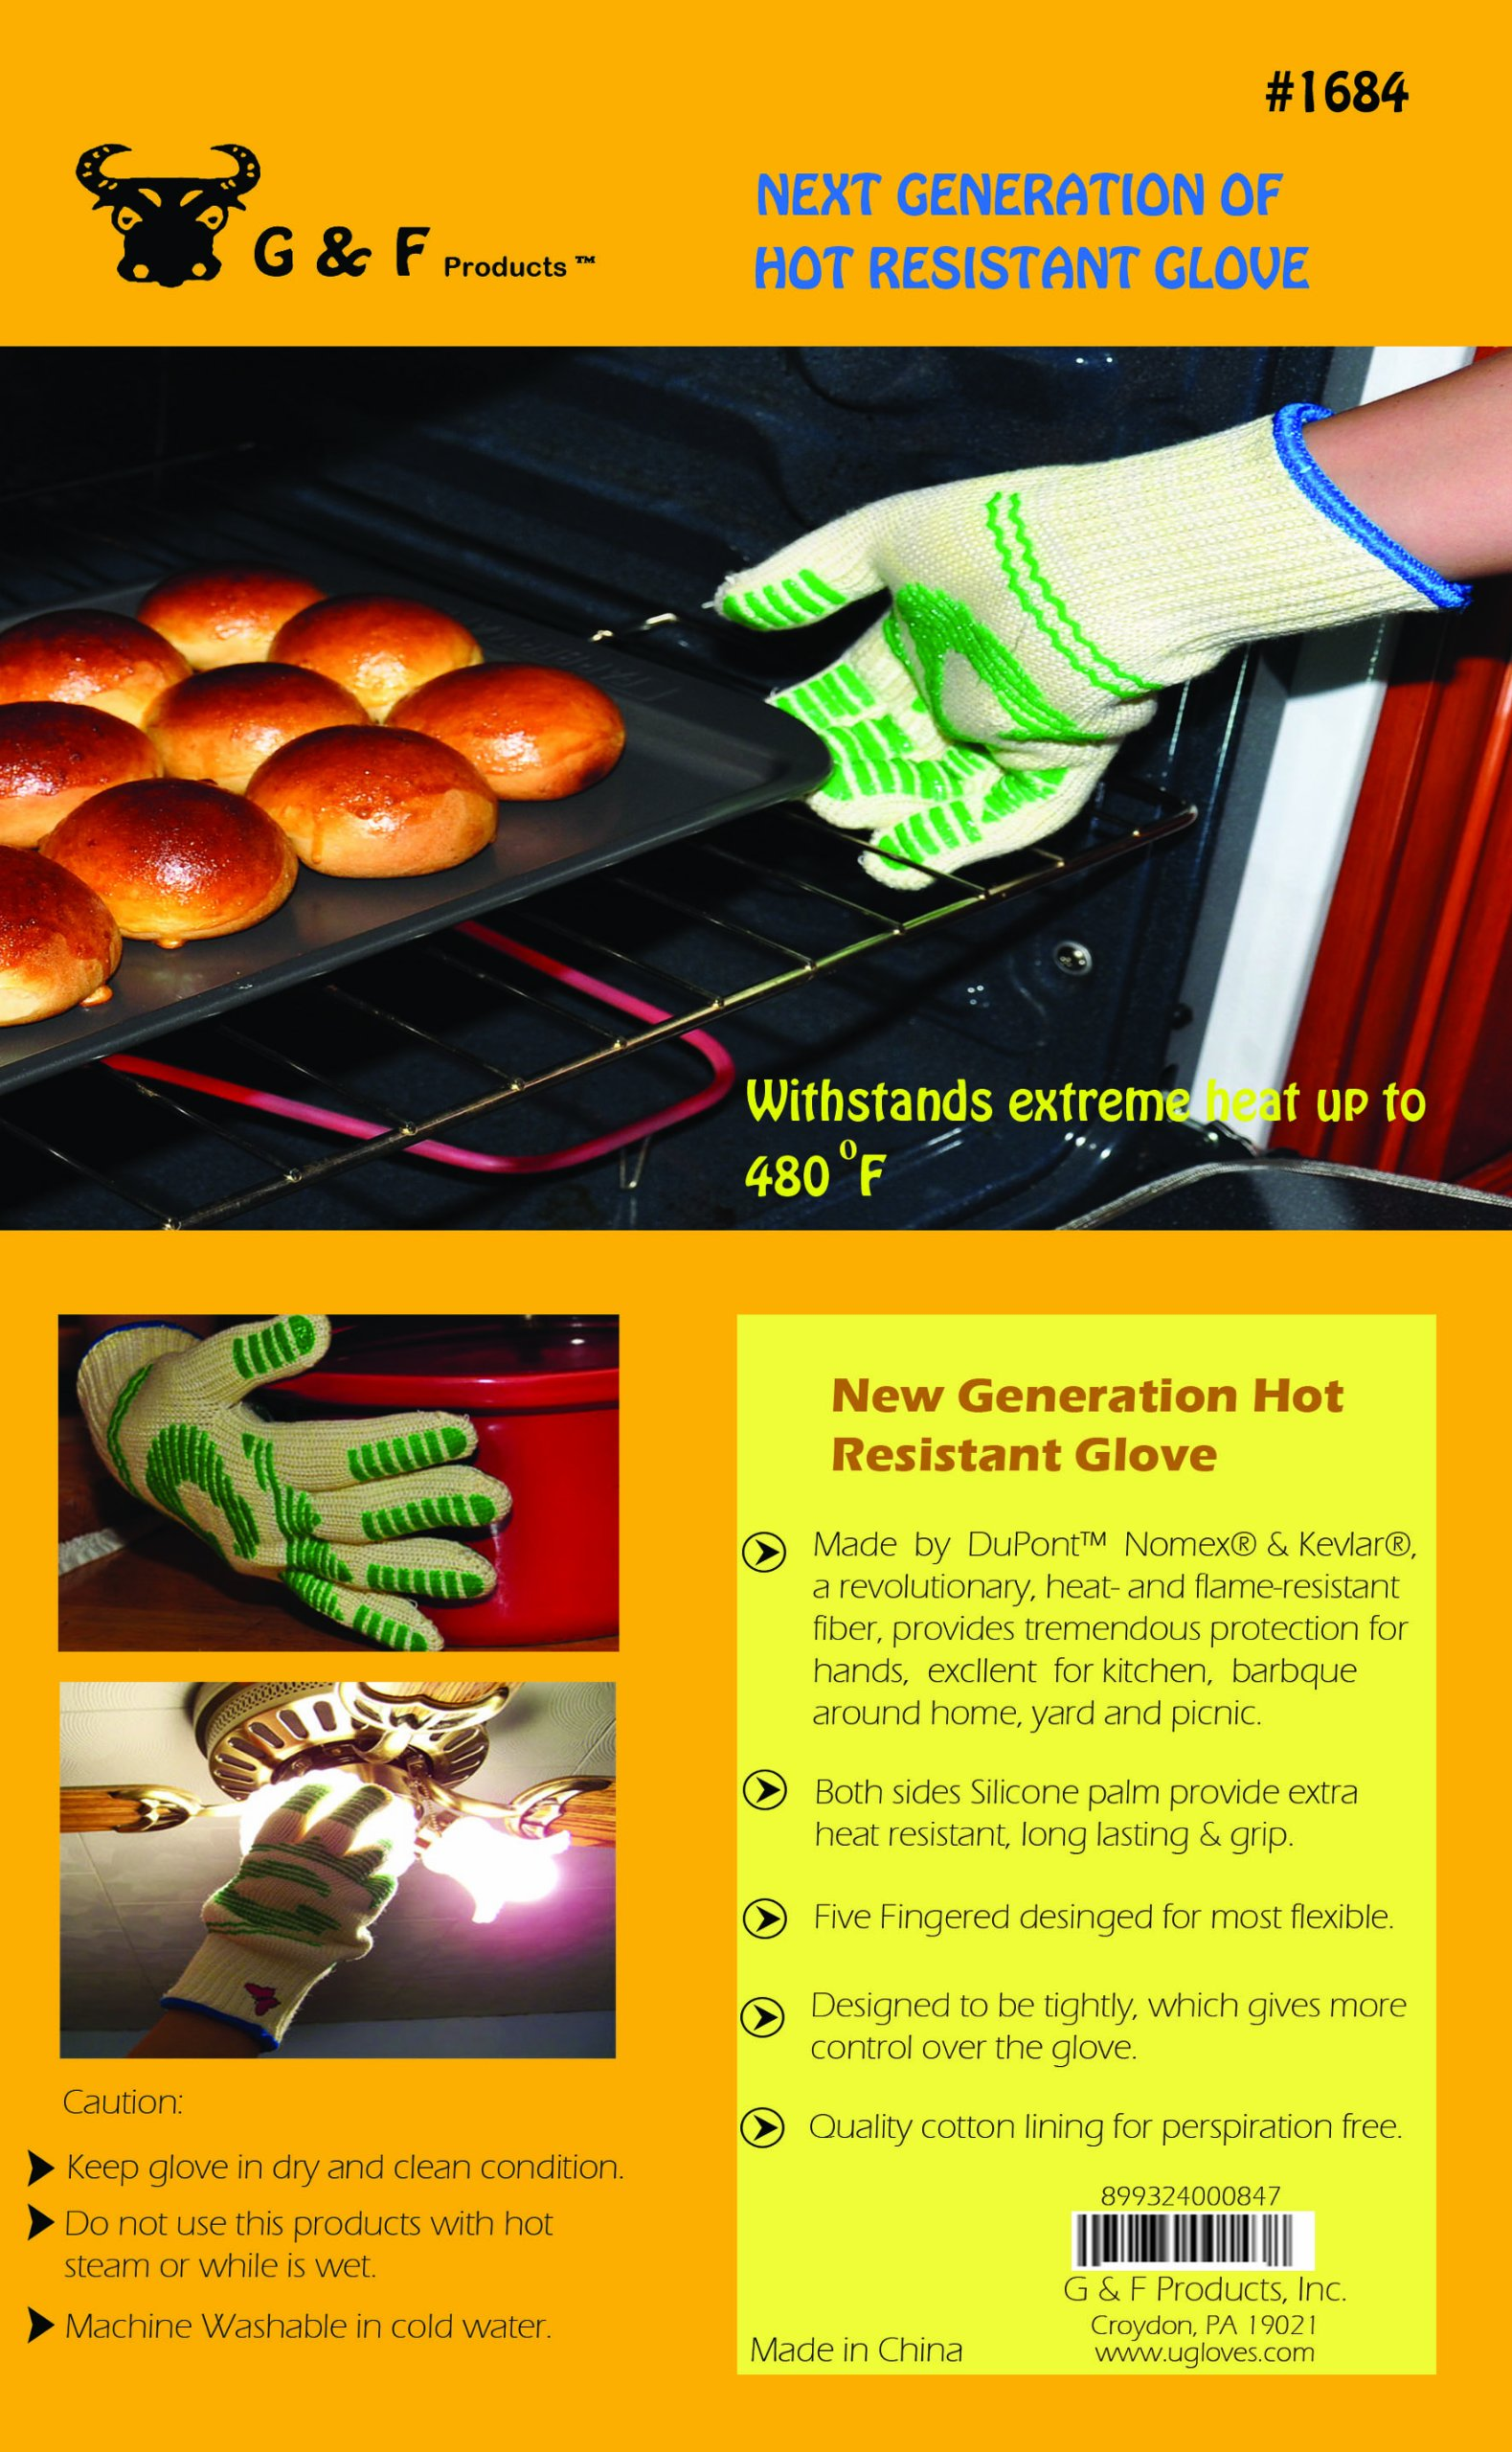 G & F 1684L Dupont Nomex  & Kevlar  Heat Resistant Gloves, Oven Gloves, BBQ Gloves, Large, 1 Pair by G & F Products (Image #4)